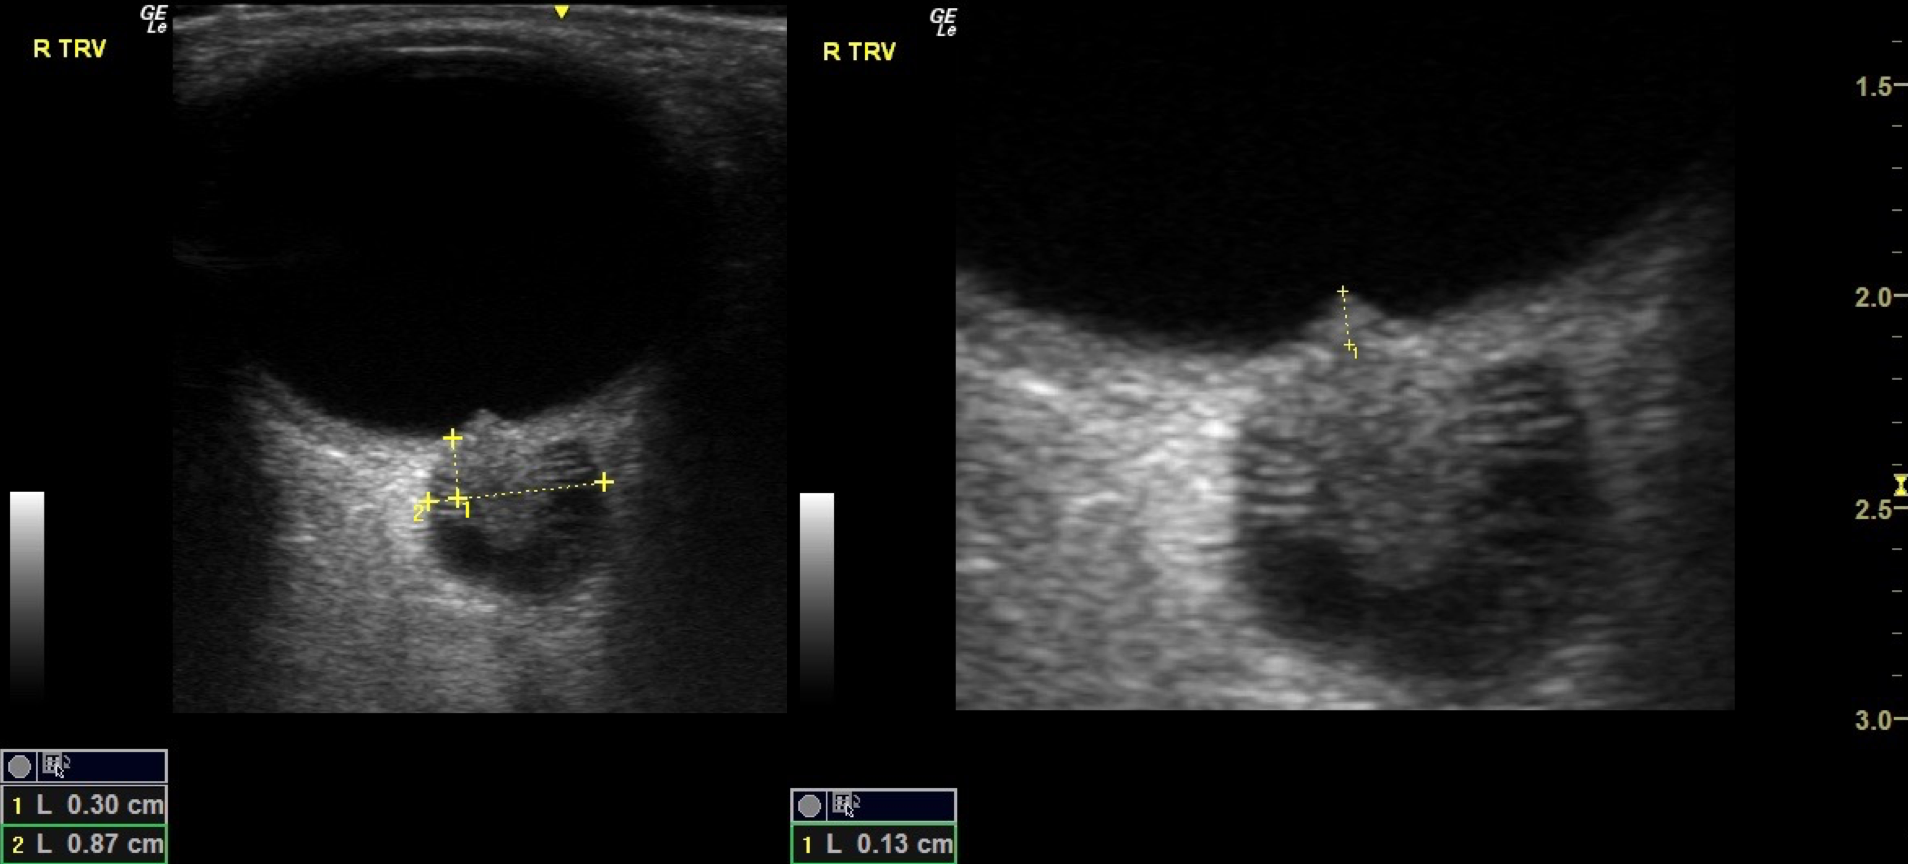 Widened optic nerve sheath and papilledema (ultrasound image)